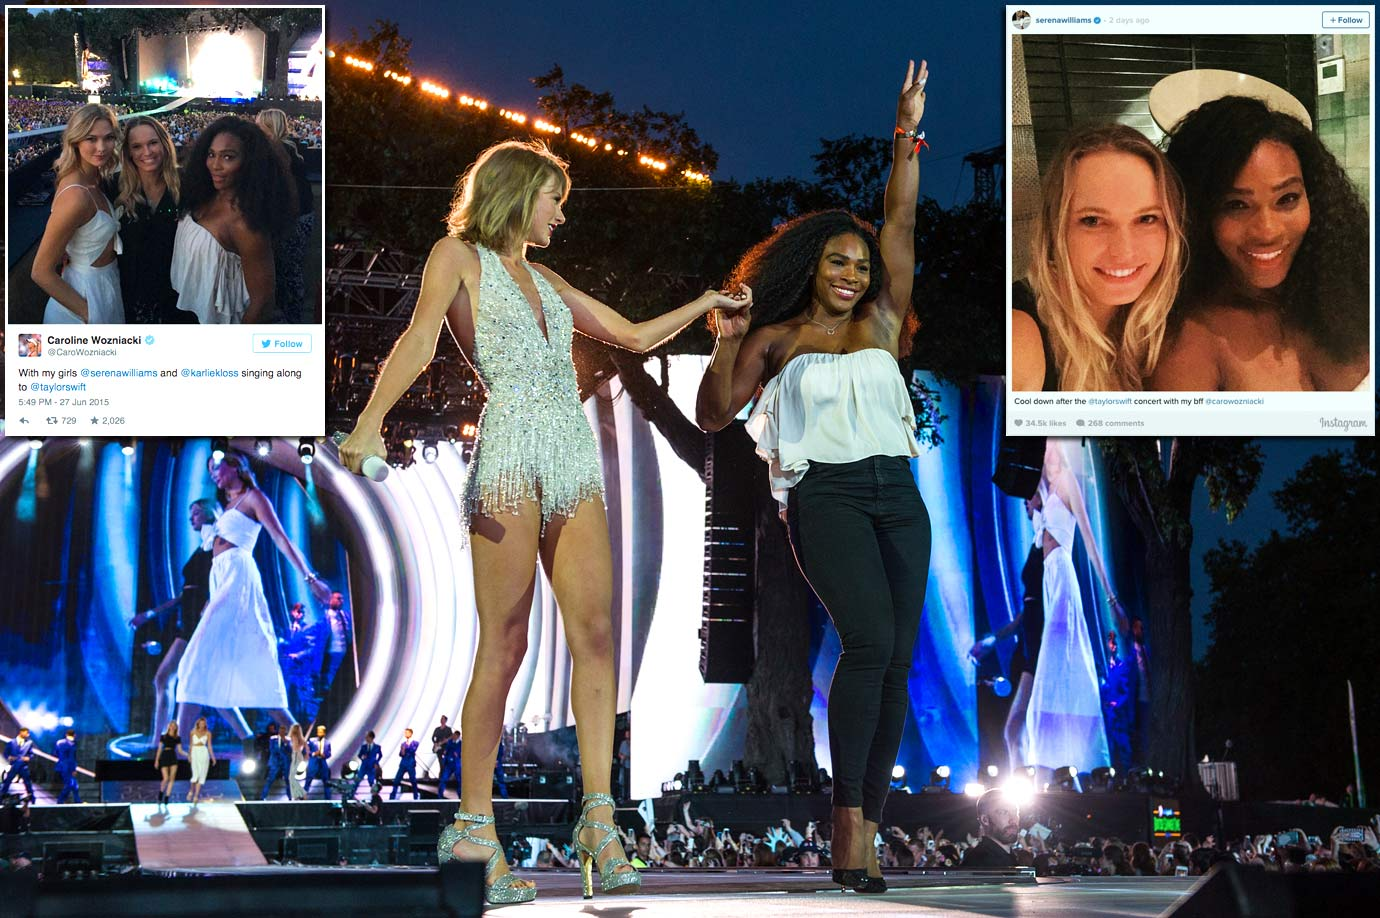 Serena Williams joins Taylor Swift onstage during The 1989 World Tour at Hyde Park on June 27, 2015 in London. Serena attended the concert with Caroline Wozniacki, and the two posted photos via Twitter and Instagram.